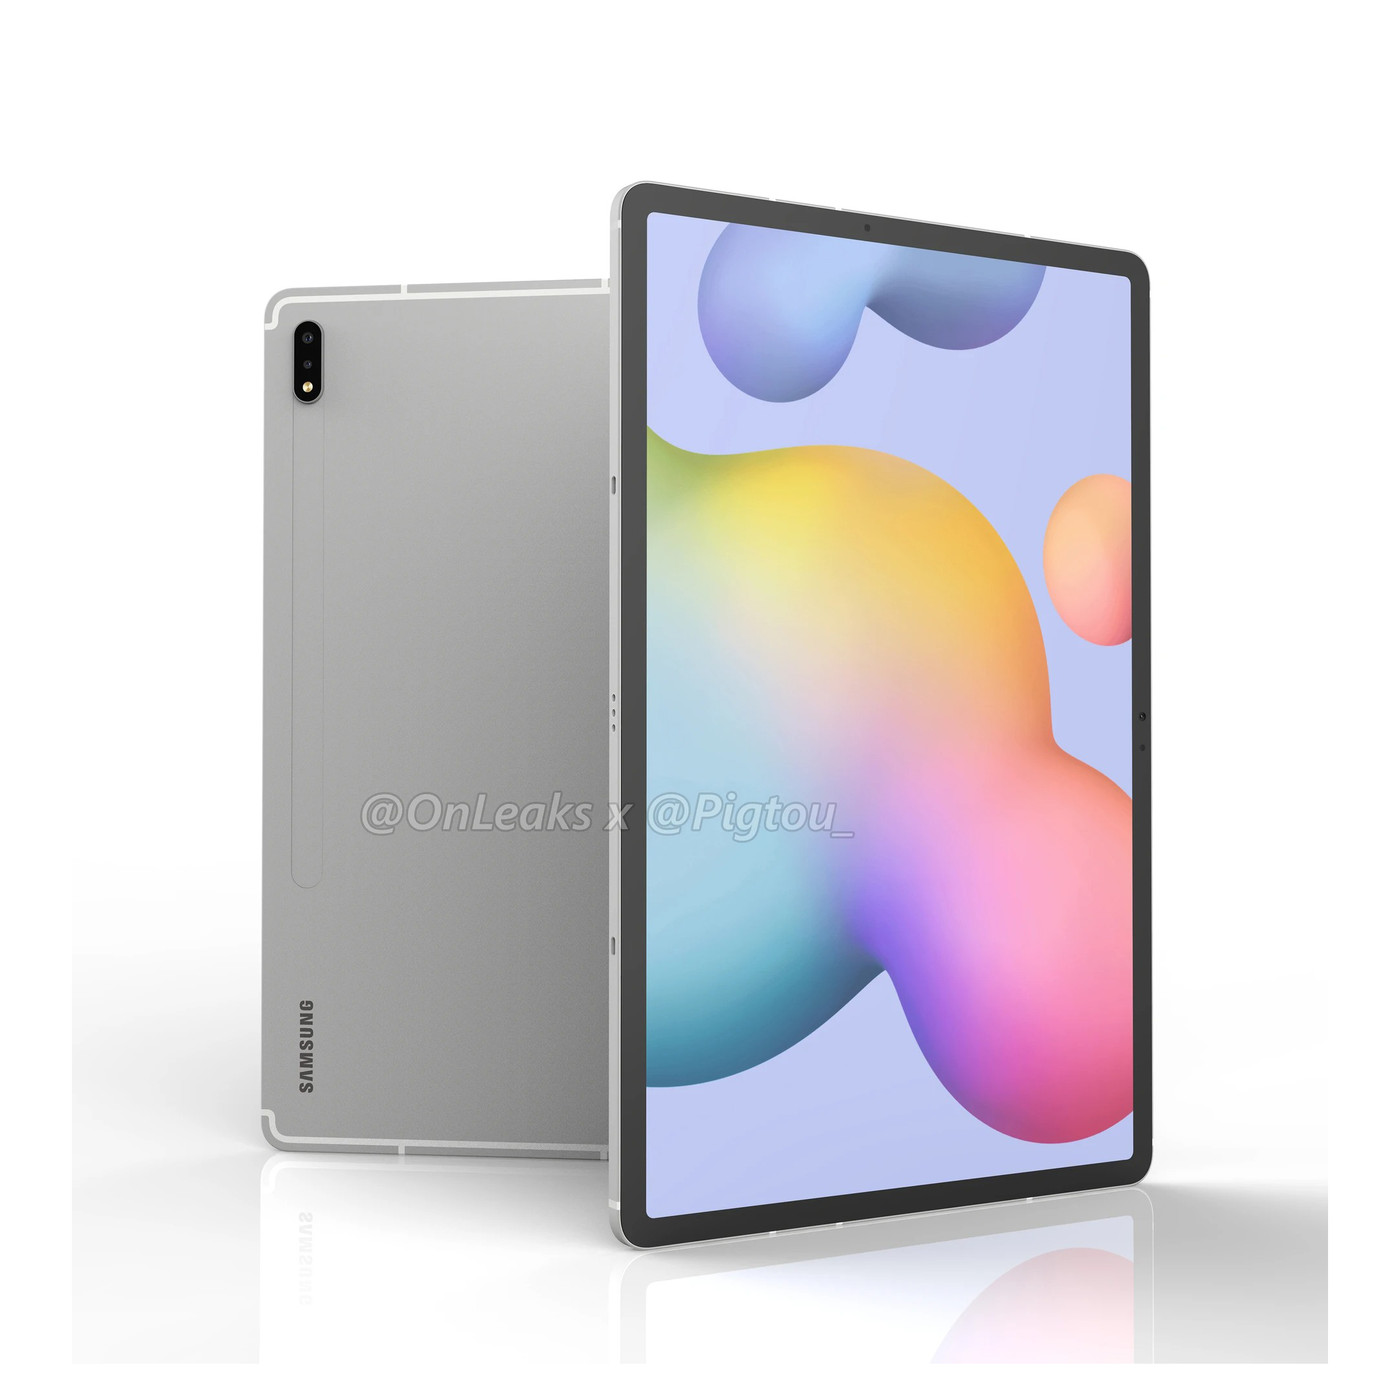 Galaxy Tab S7 Plus Renders Show Off A Big 12 4 Inch Display The Verge